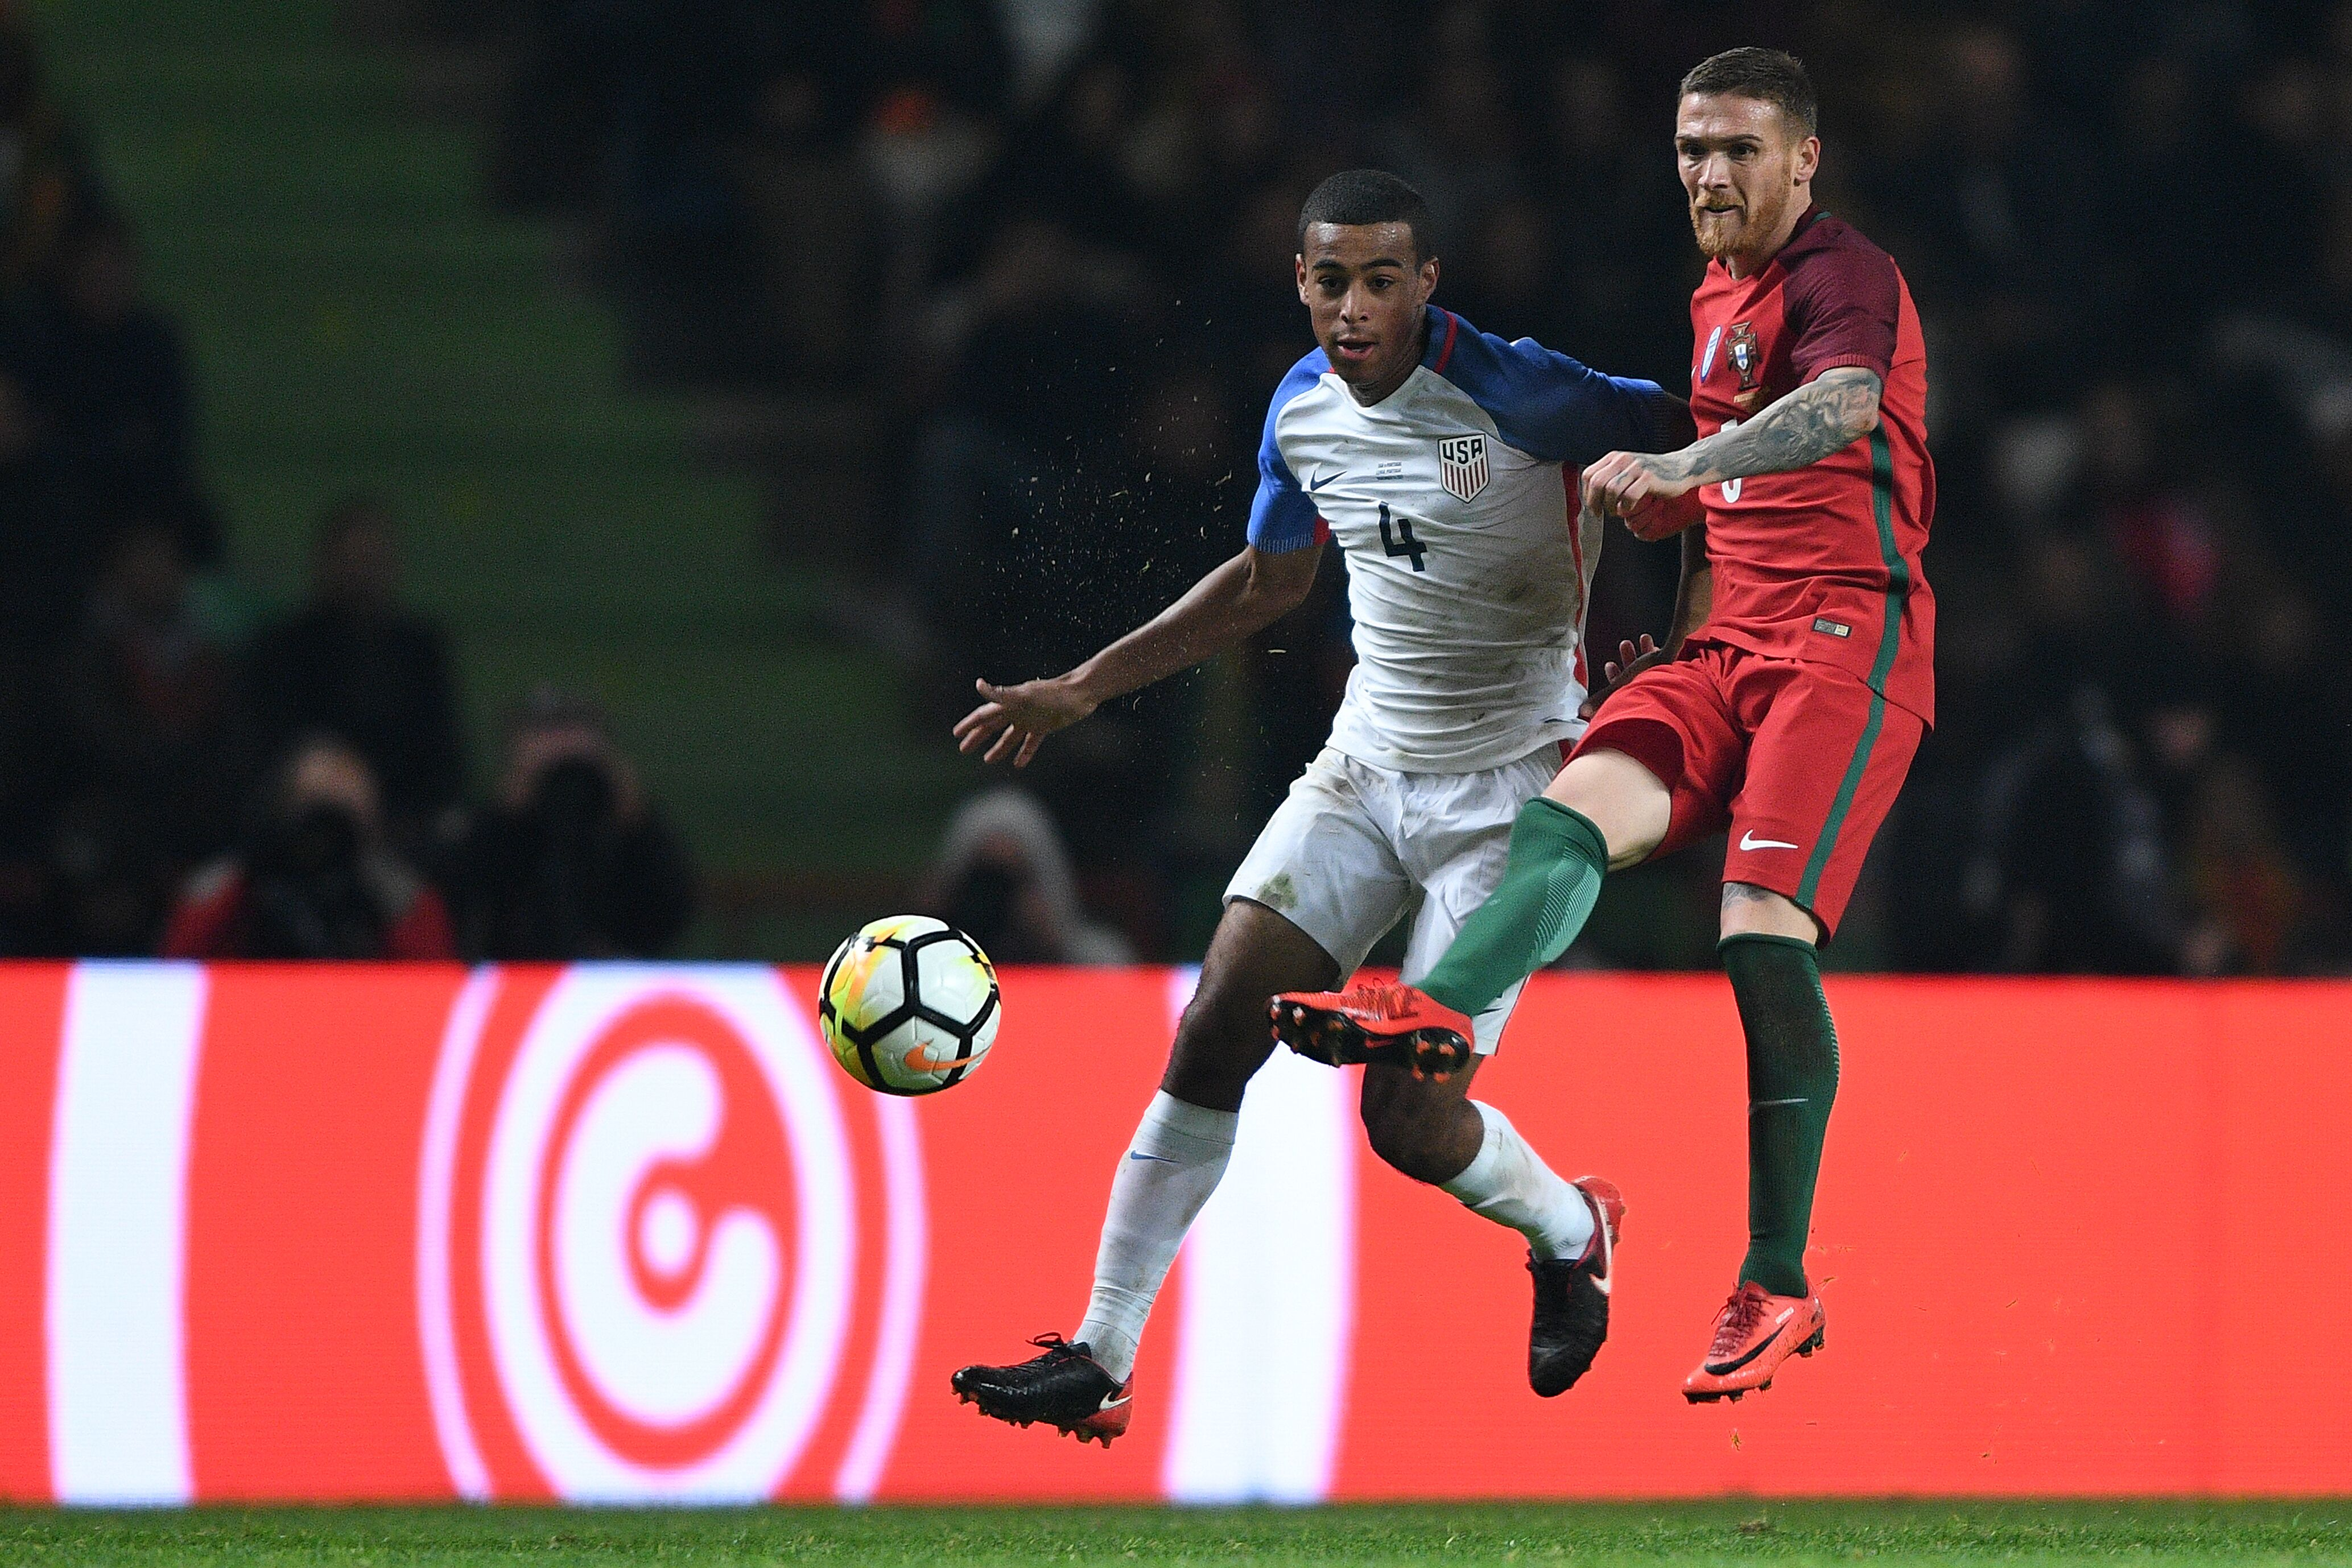 874230104-portugal-vs-usa-international-friendly.jpg